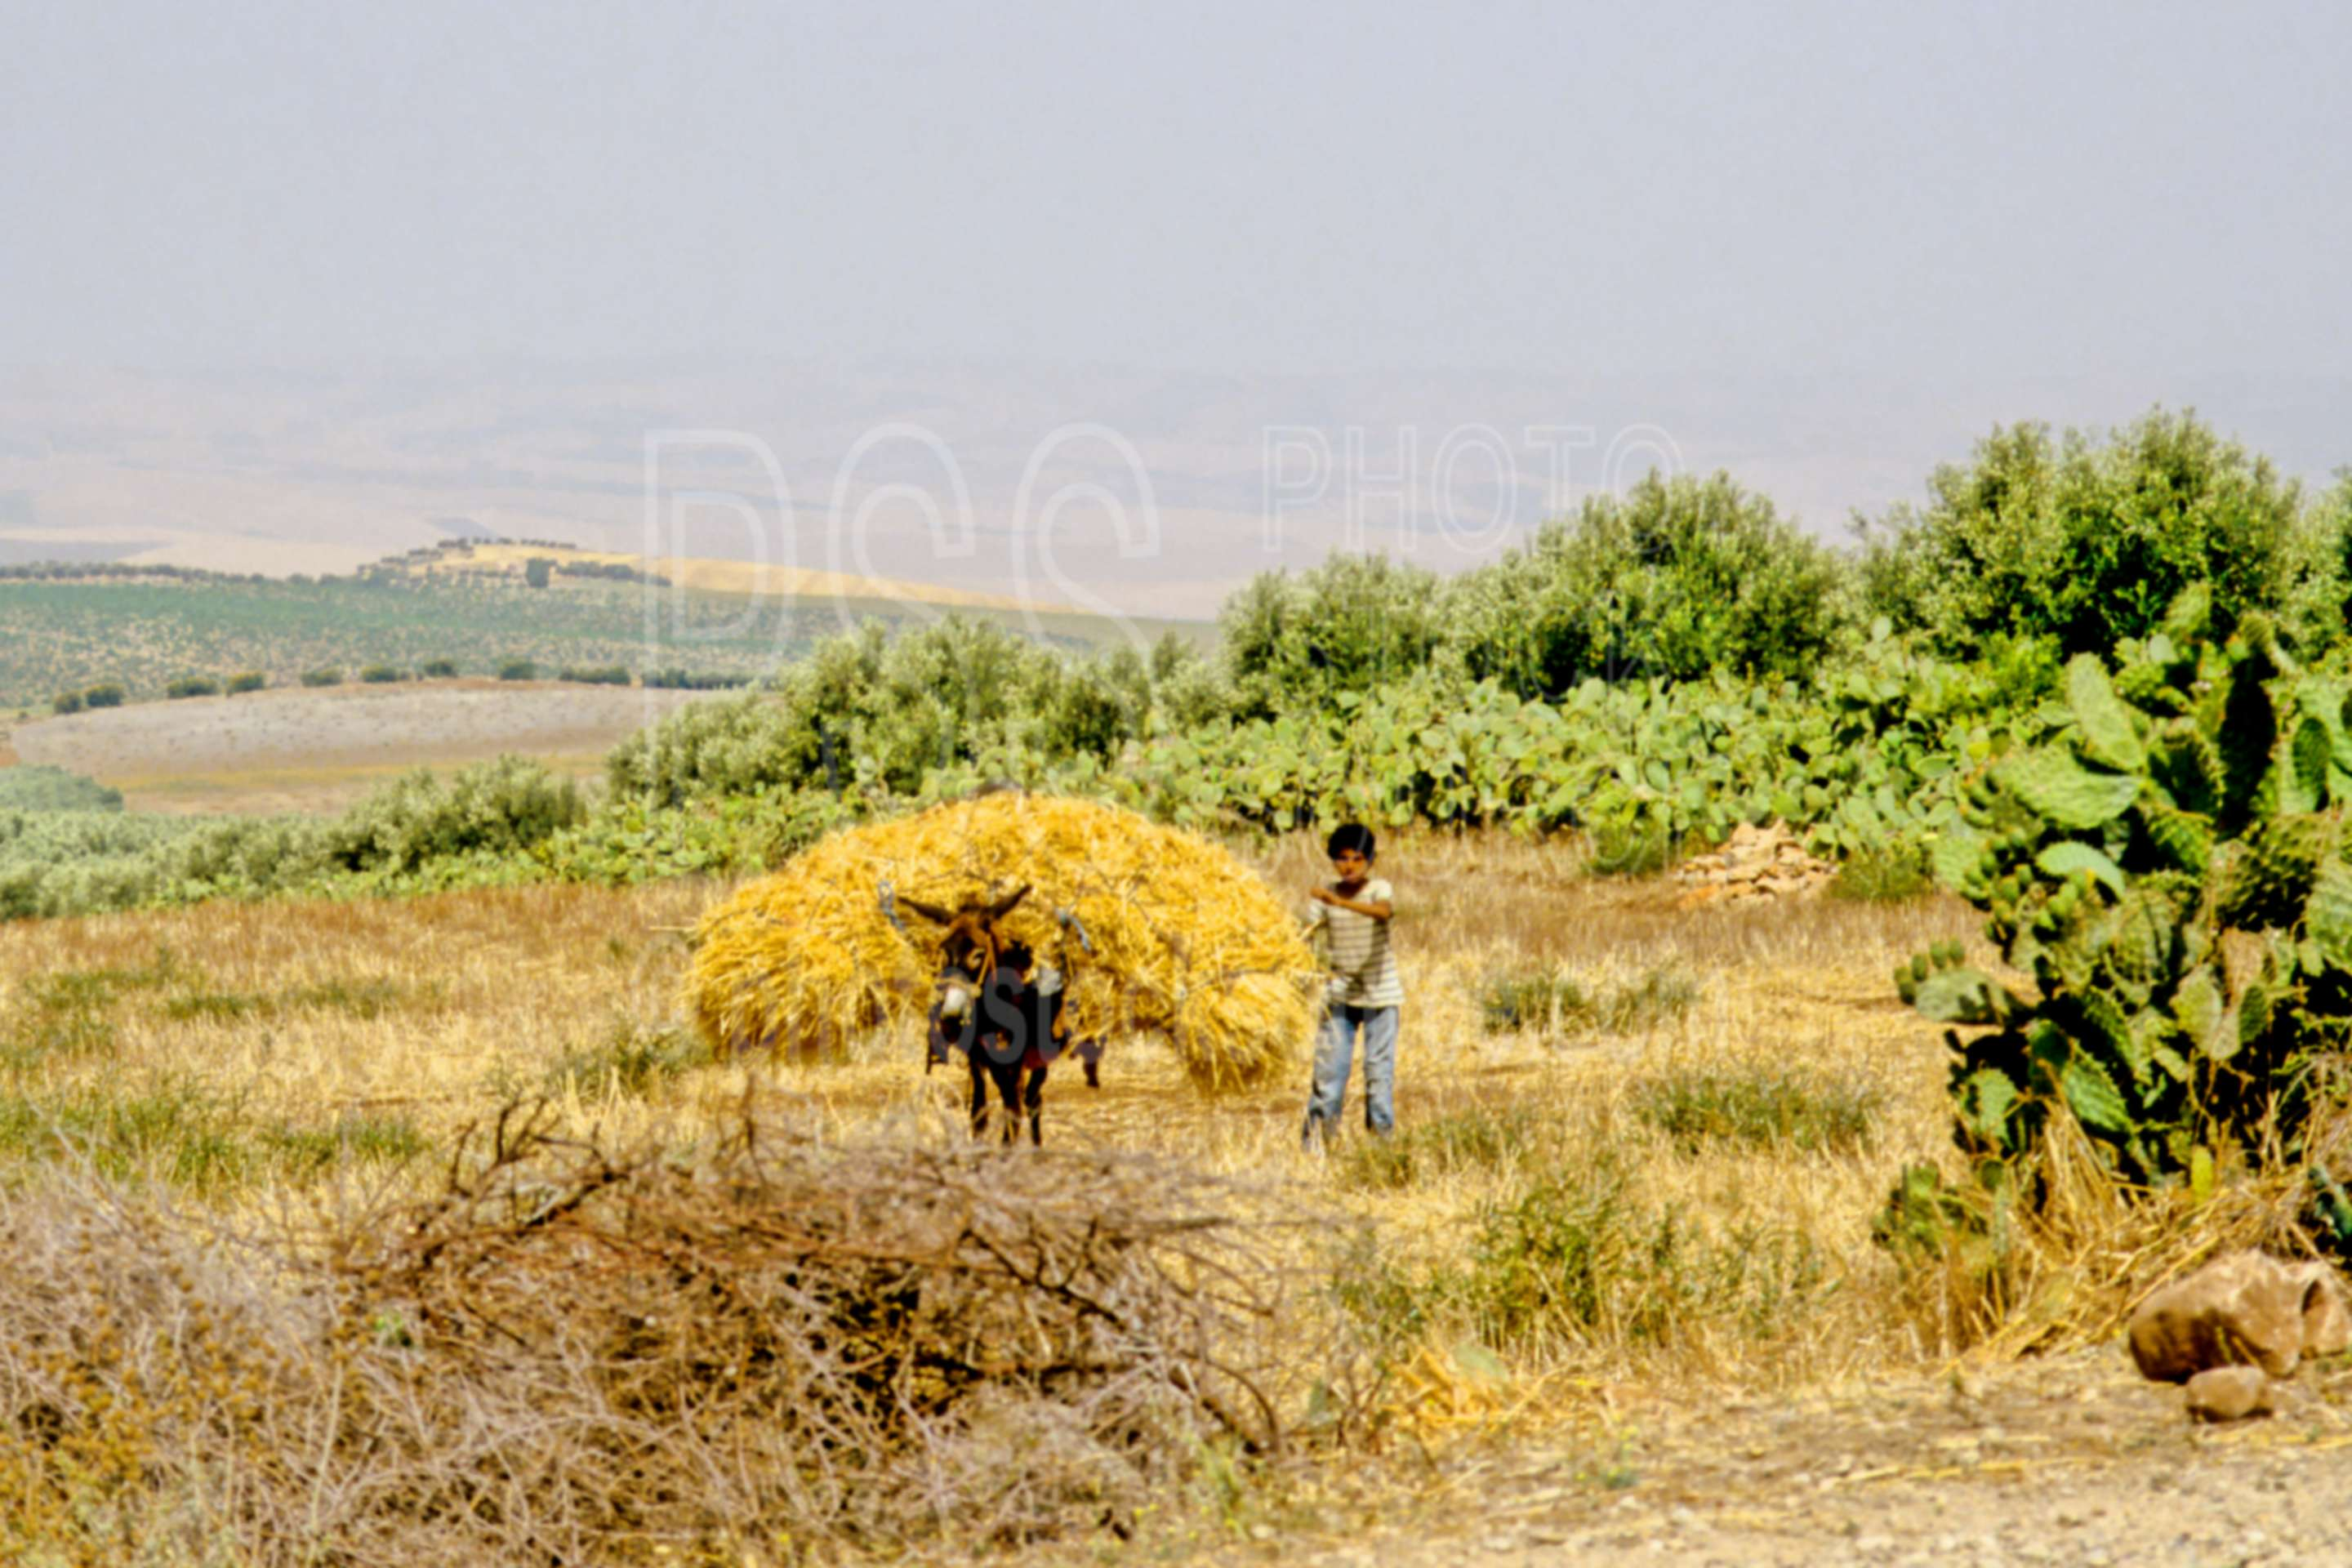 Donkey Carrying Hay,donkey,work,worker,hays,boys,beast of burden,agriculture,animals